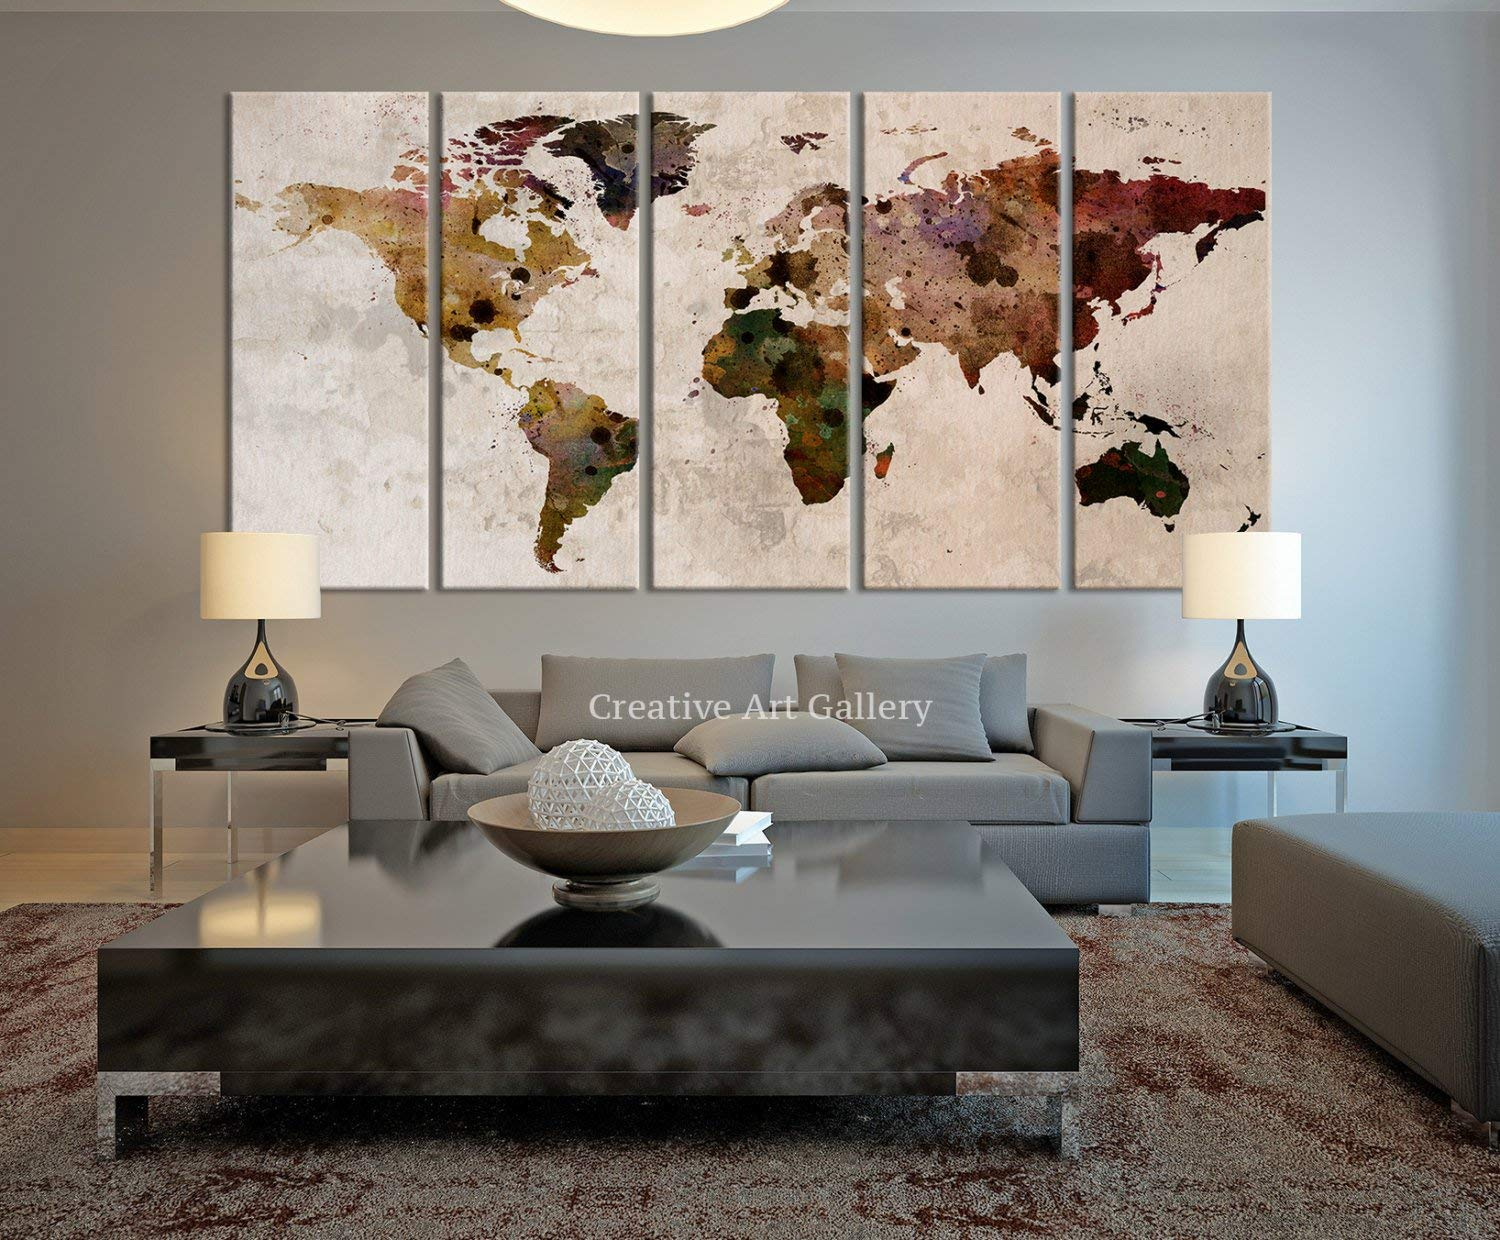 Funy decor large canvas print rustic world map large wall art extra large vintage world map print for home and office wall decoration 60x32 inch total